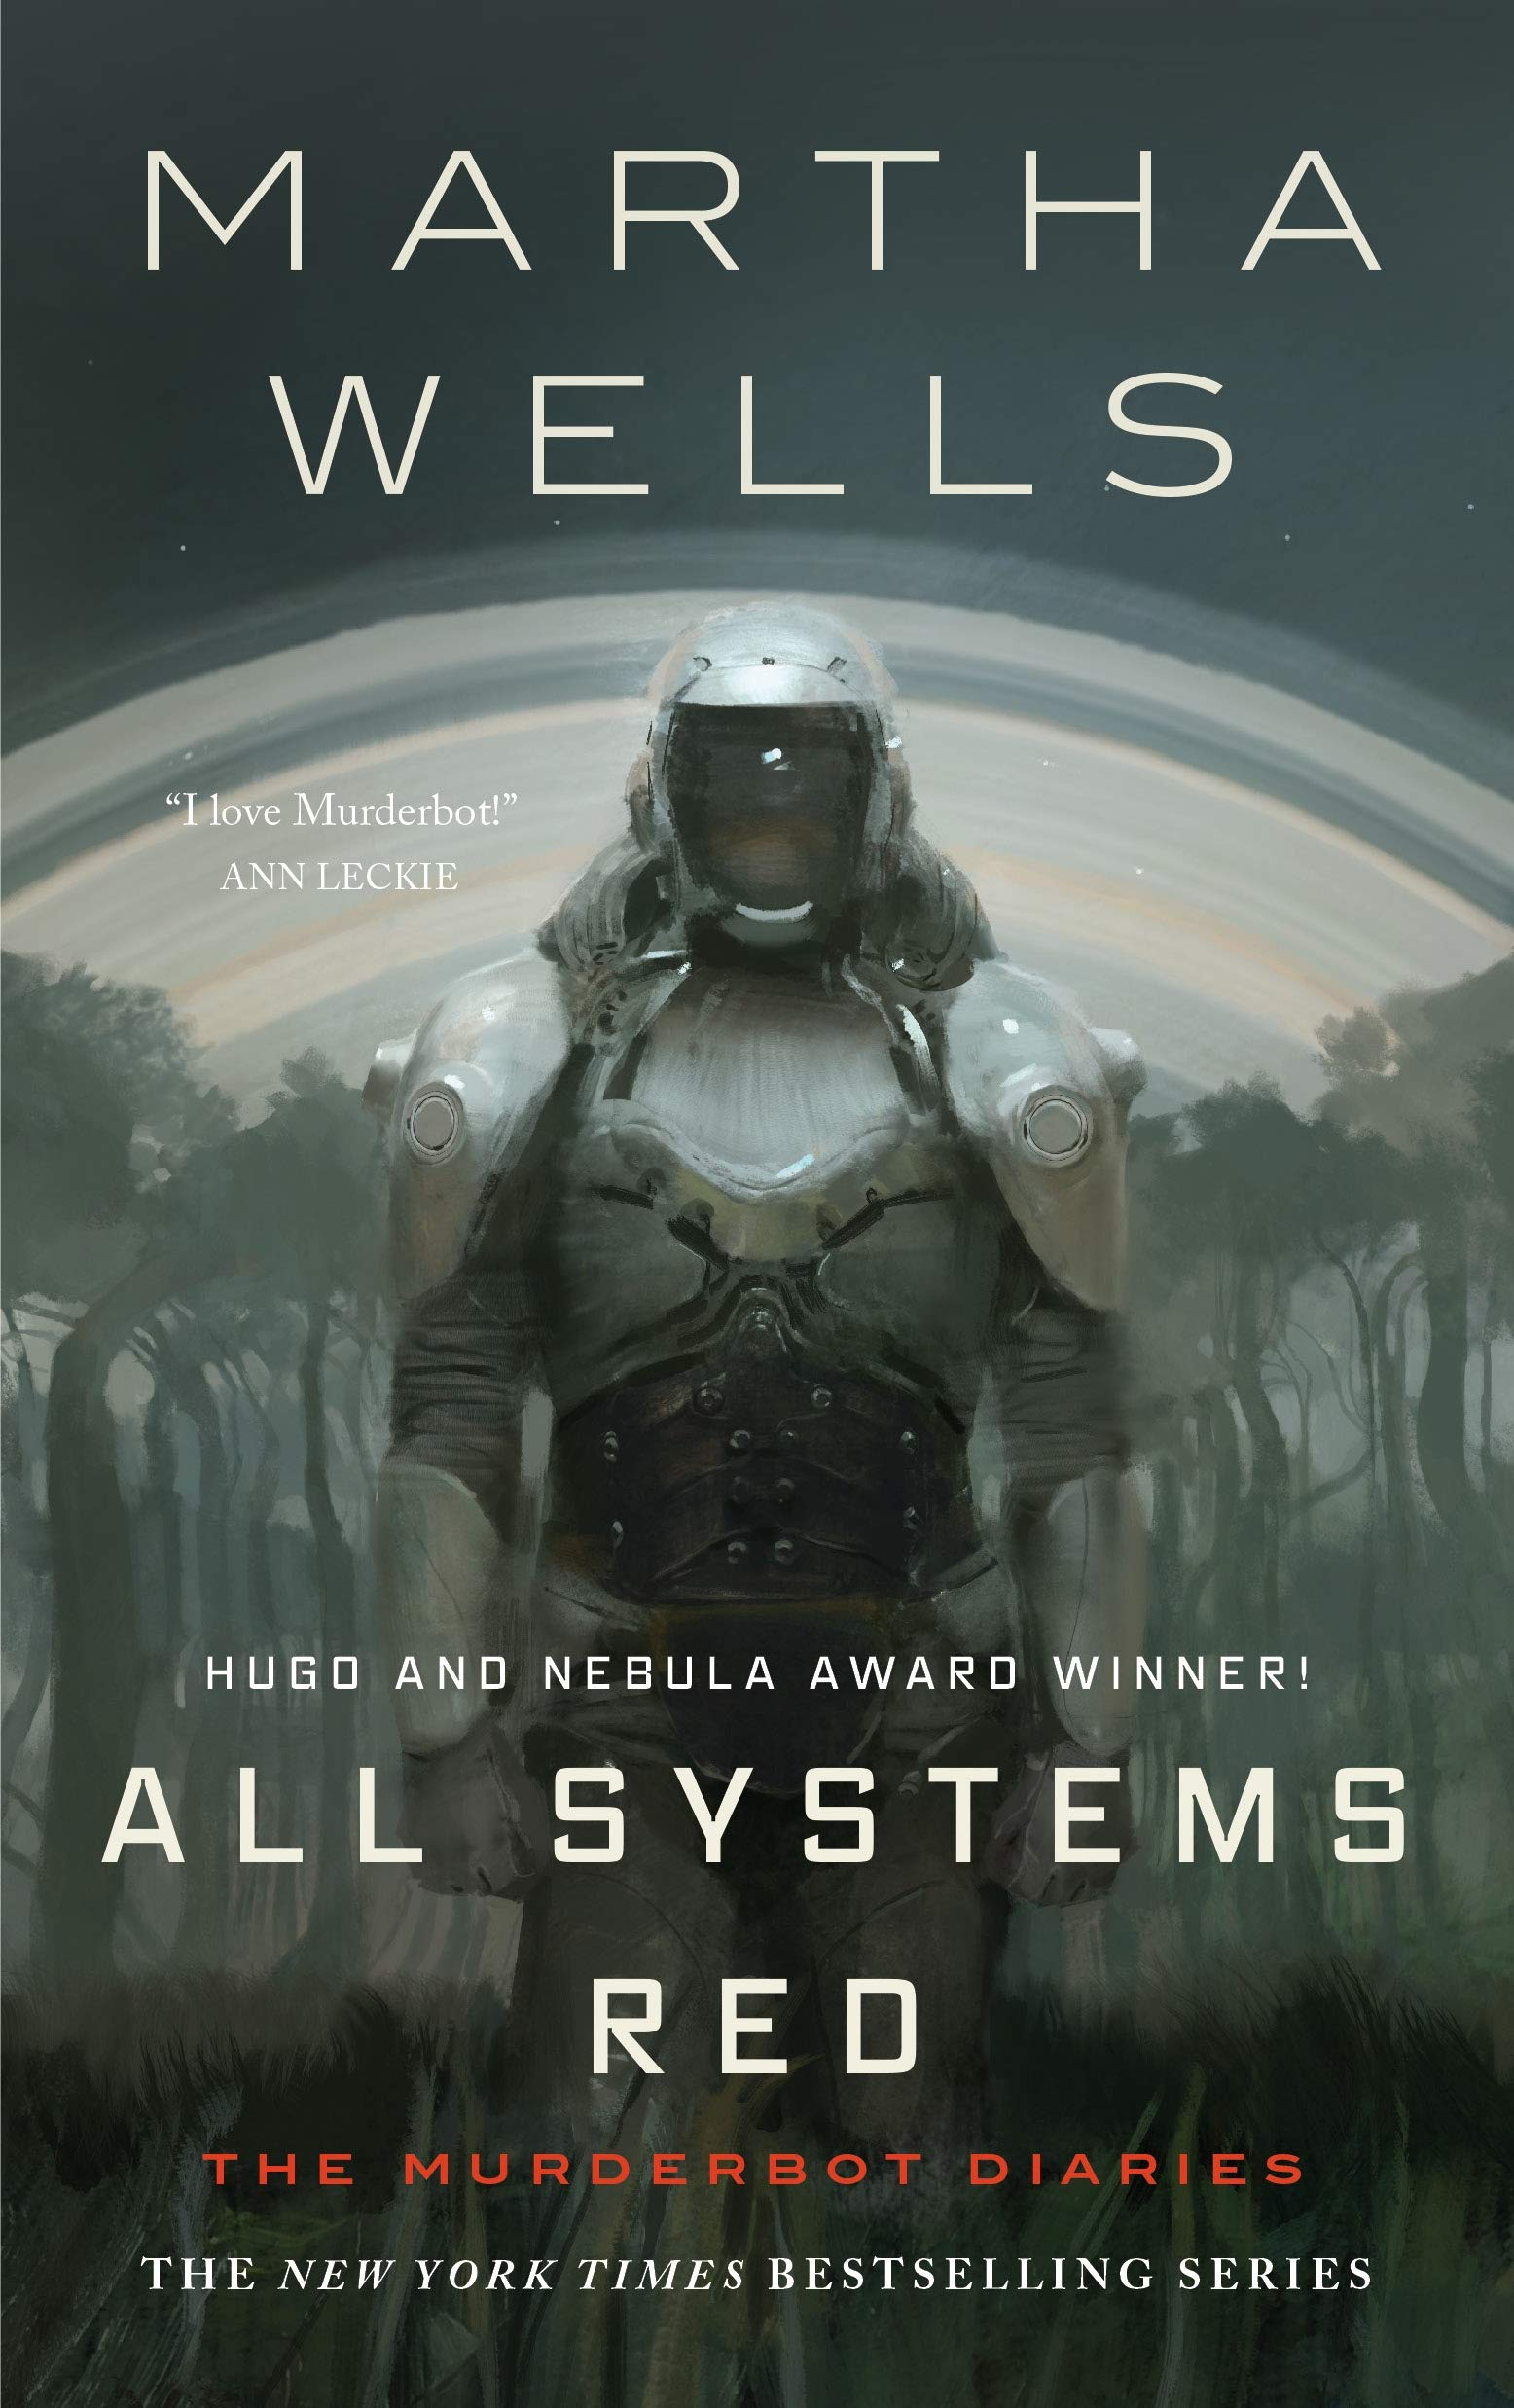 The Murderbot Diaries: All Systems Red by Martha Wells